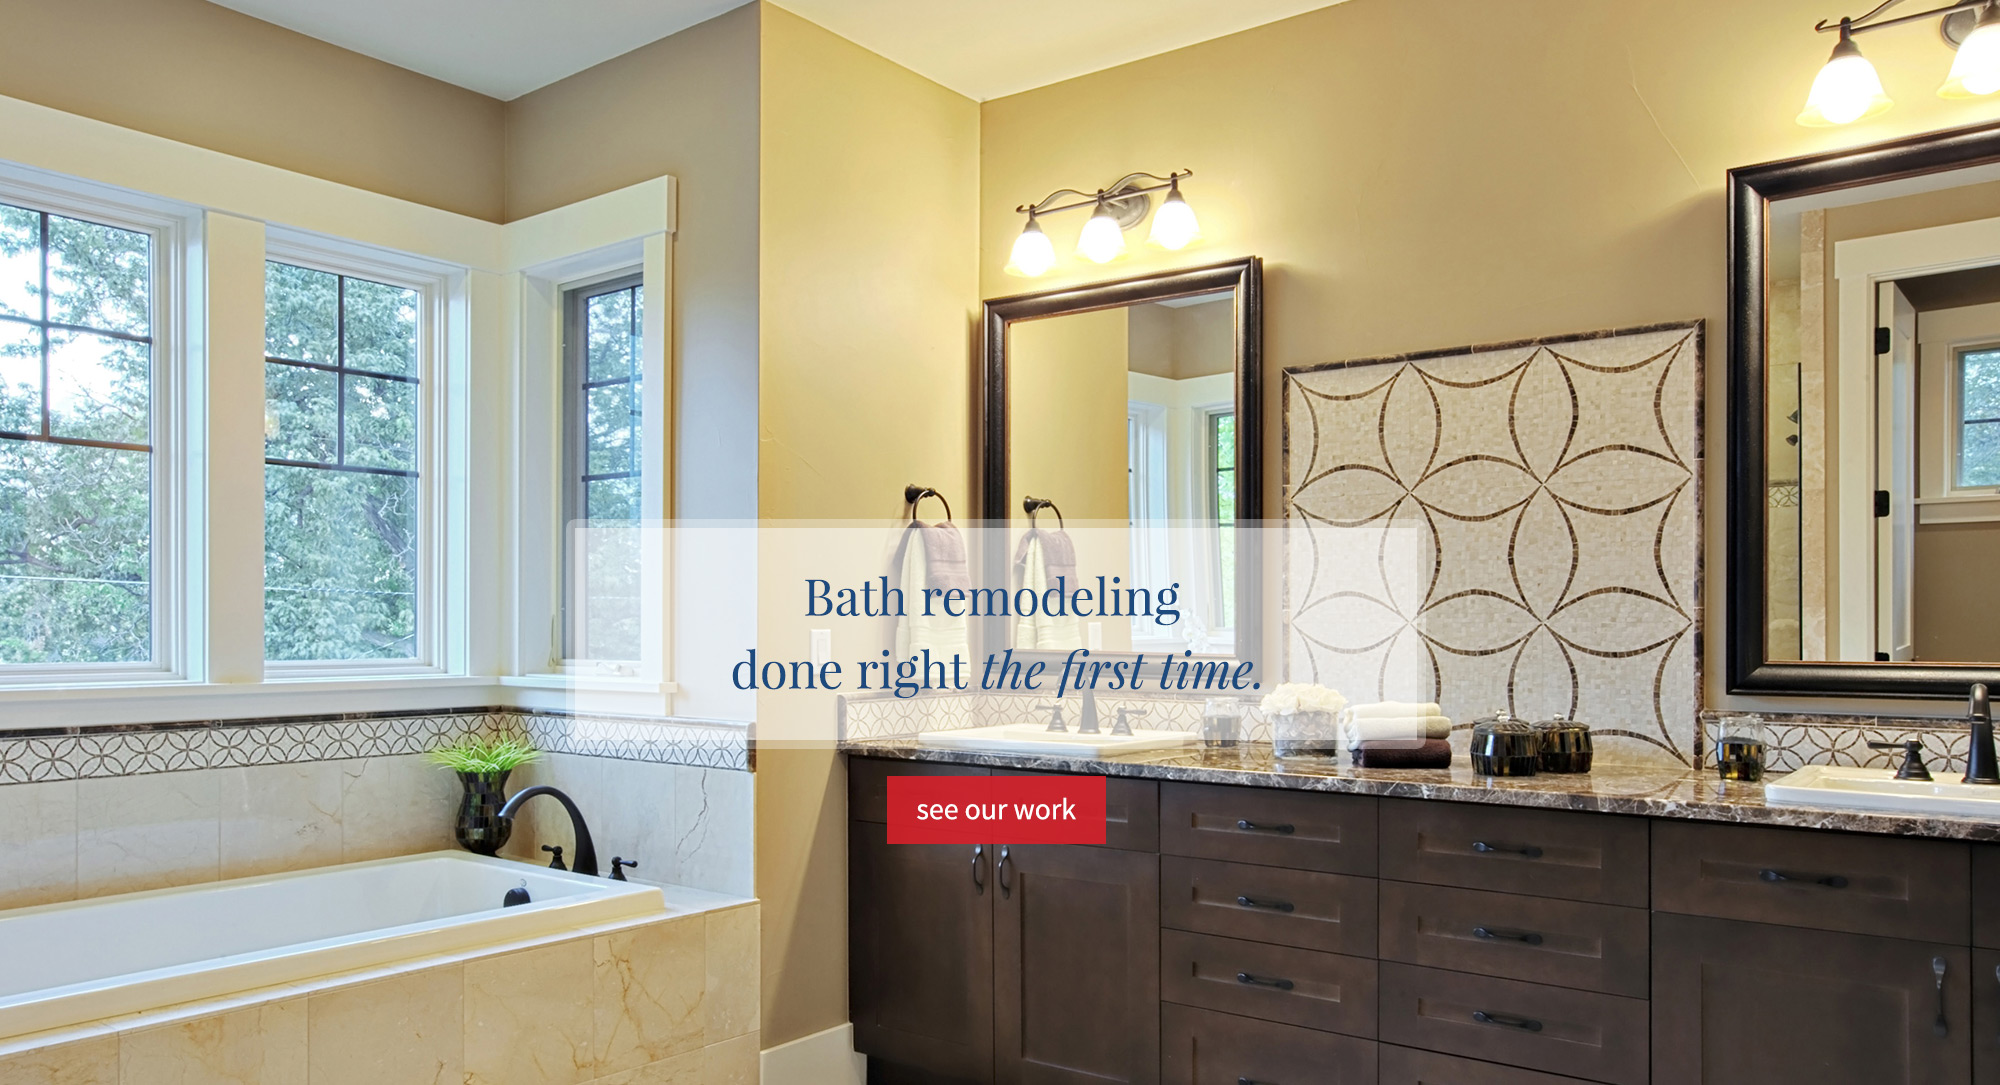 Indianapolis Bathroom Remodeling Landis And Landis Bathroom Remodeling Indianapolis In